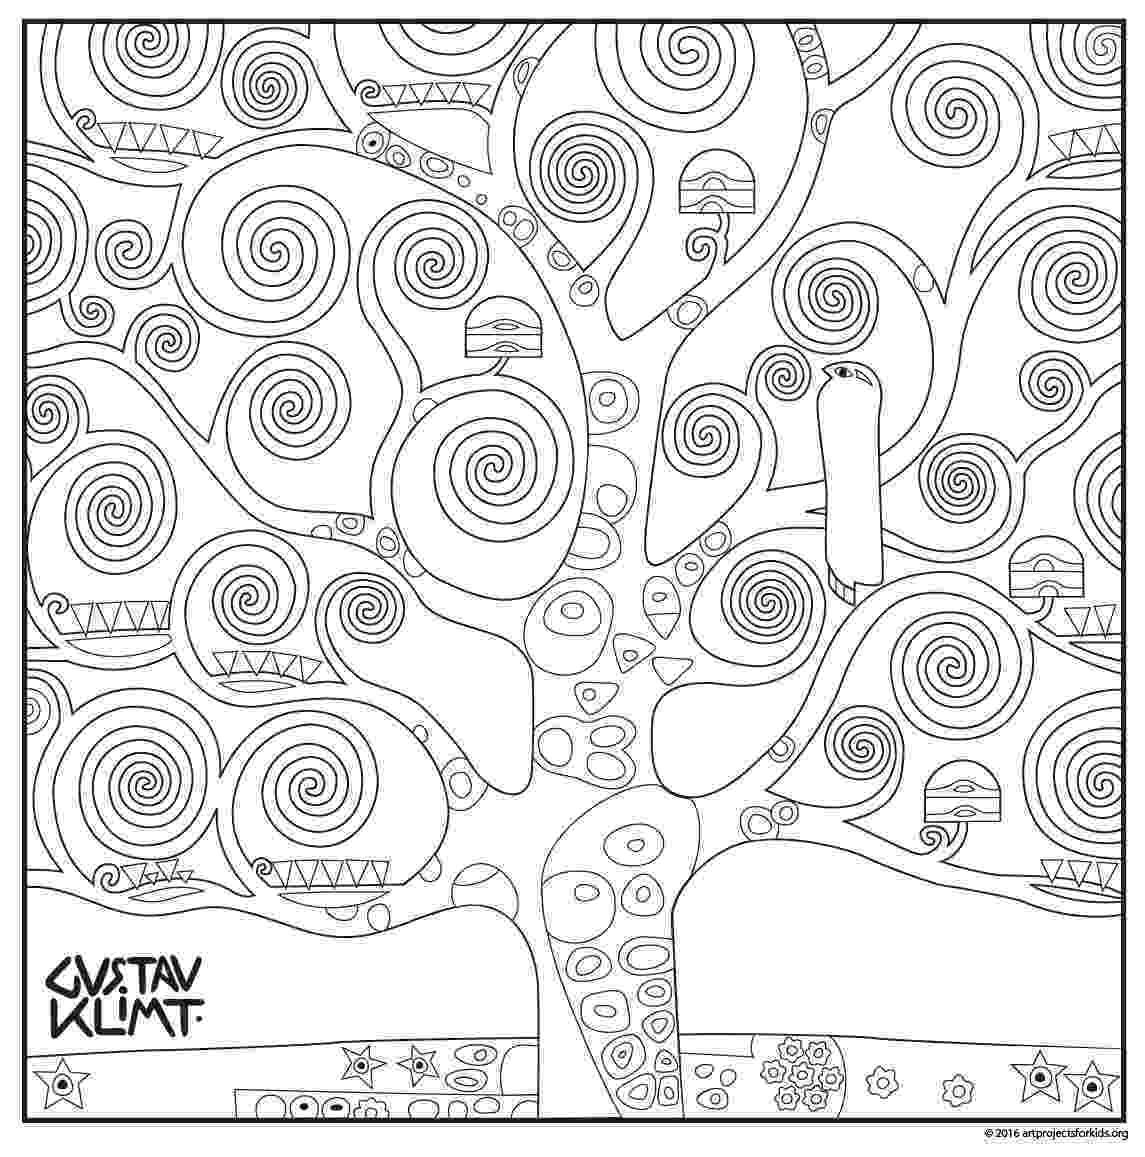 tree of life coloring pages tree of life coloring page art projects for kids of pages coloring tree life